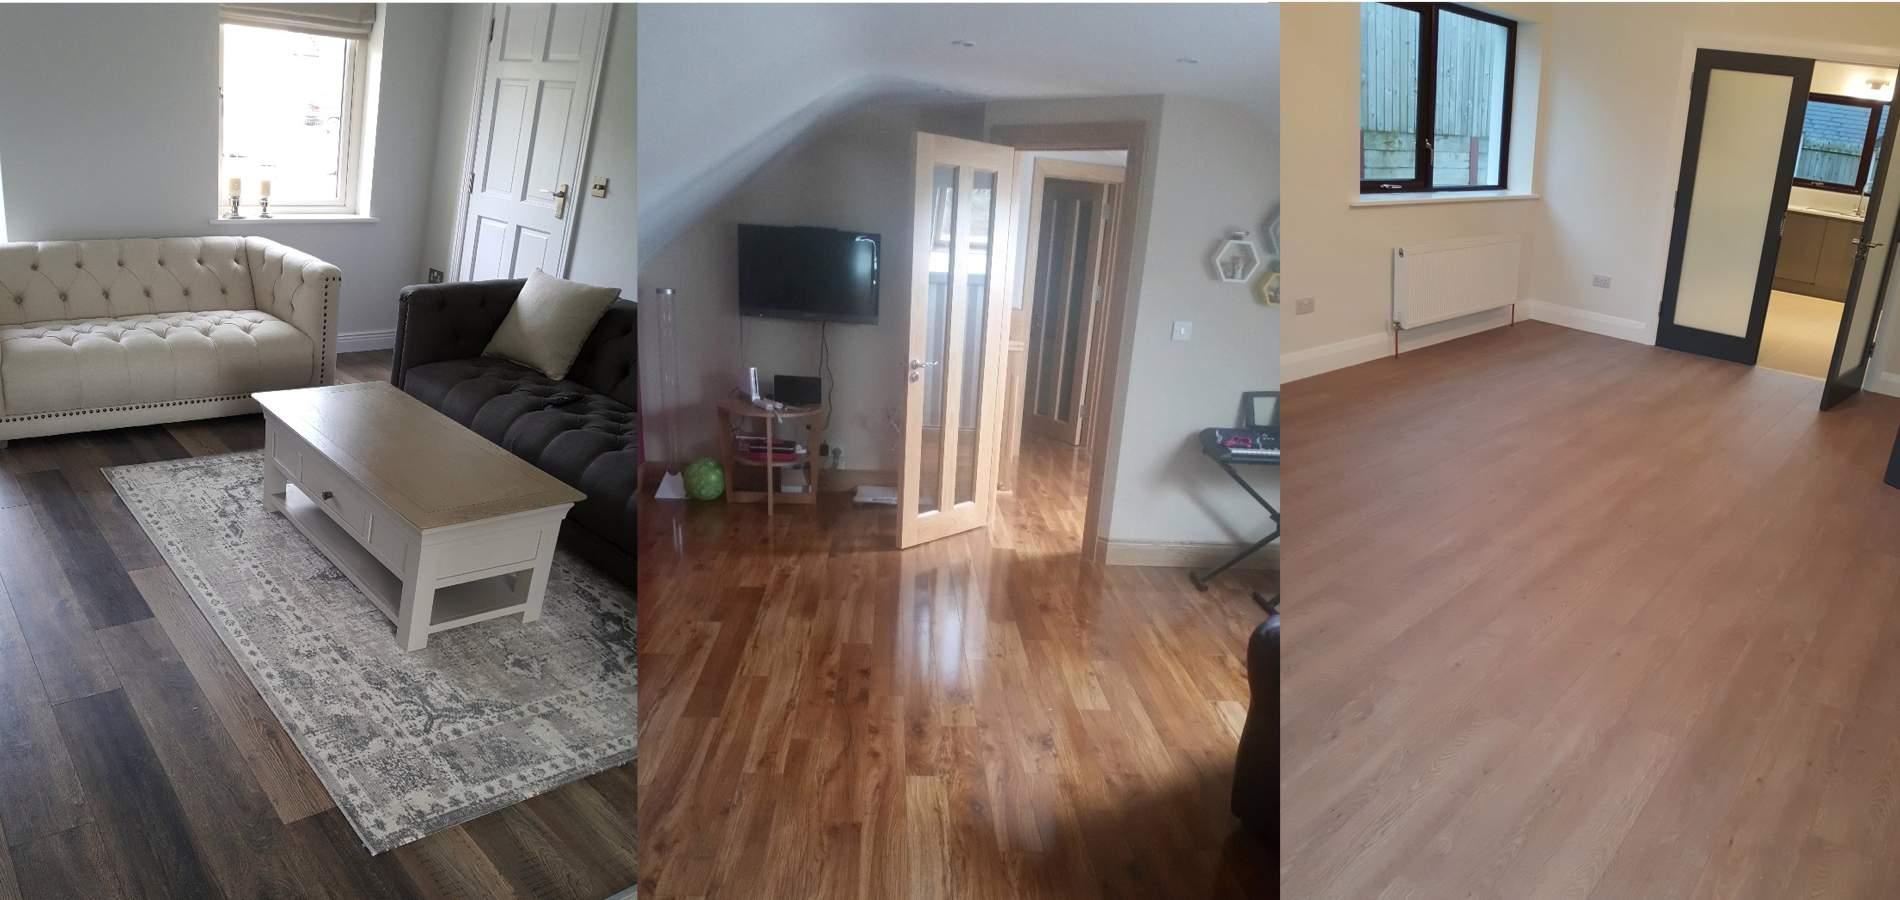 Timber Flooring by North West Tiles & Timber, Co. Leitrim, Ireland